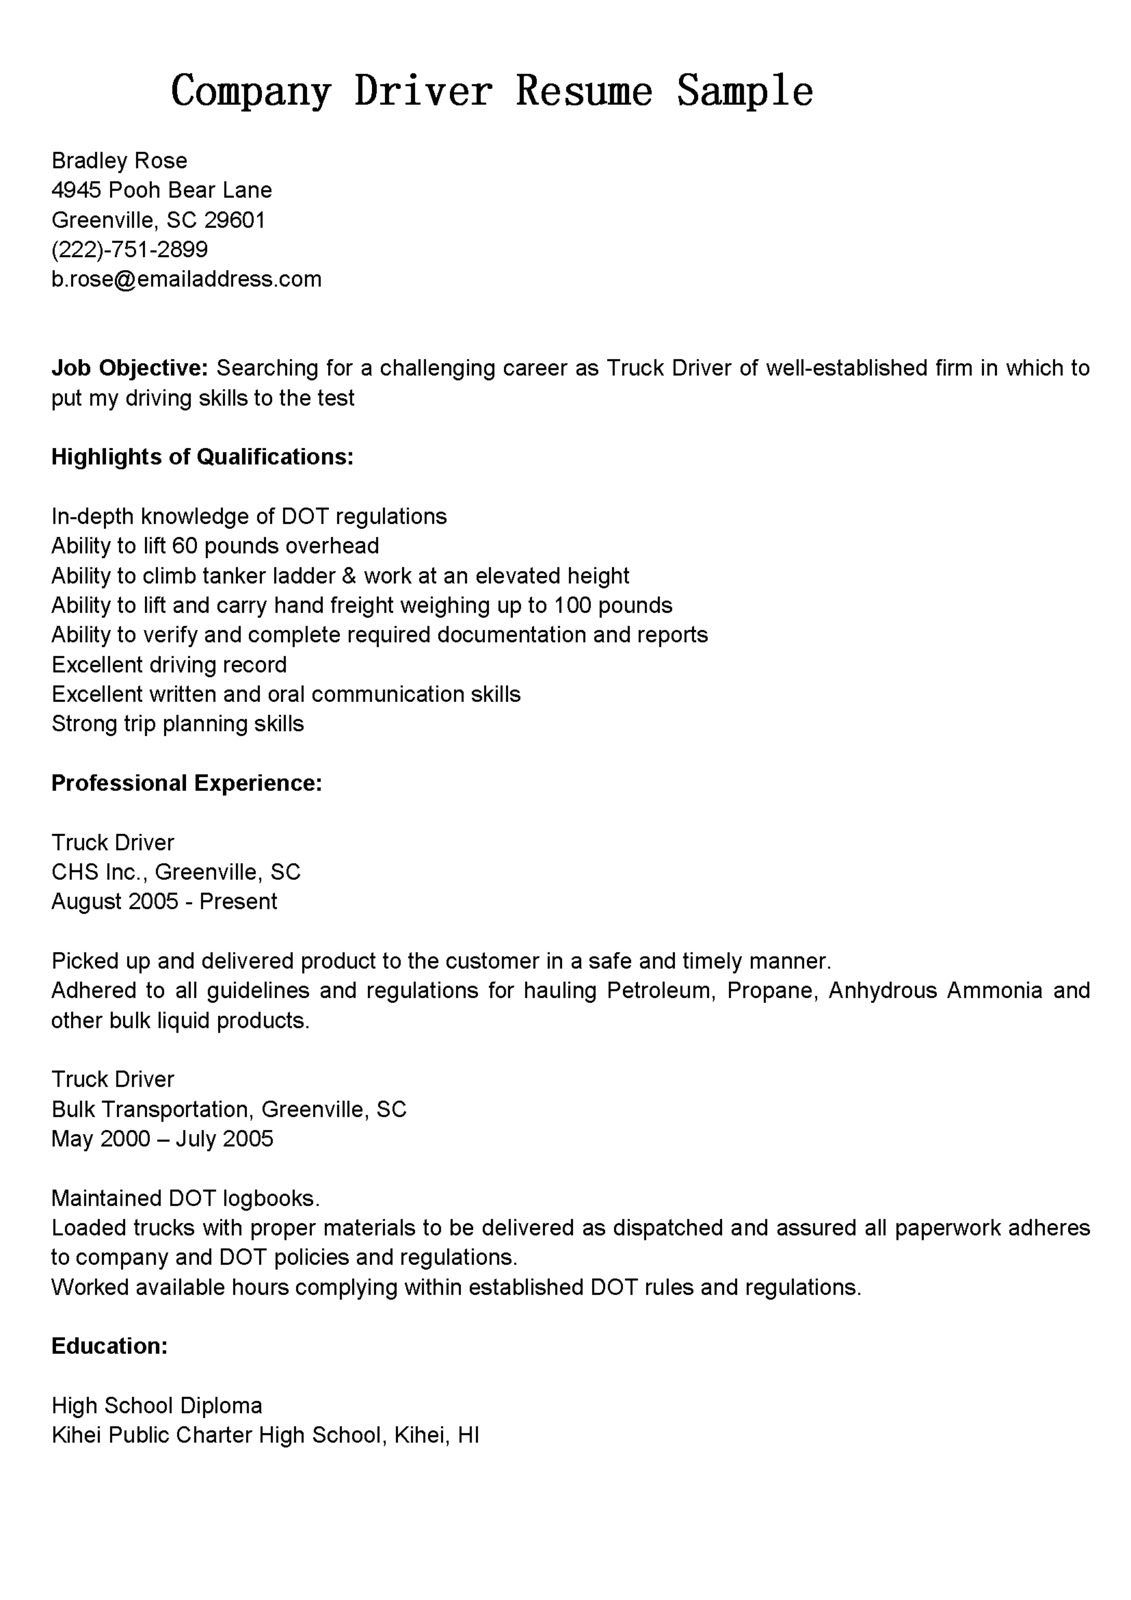 Resume For A Driver Driver Resumes Company Driver Resume Sample